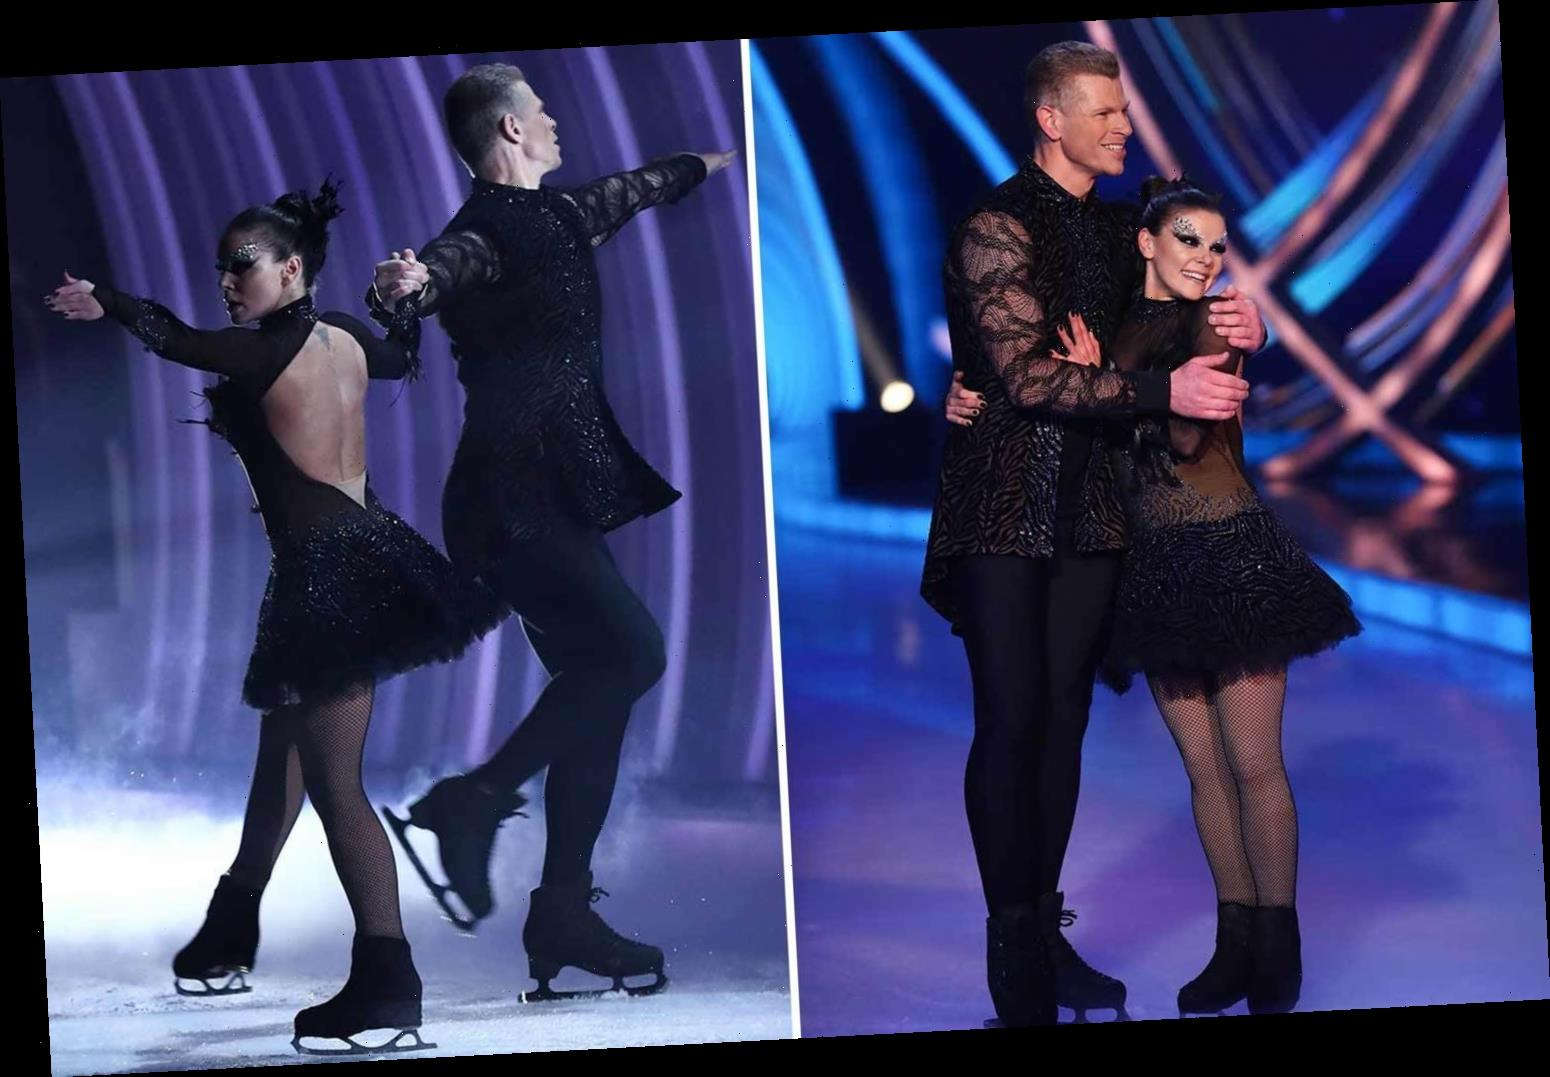 Furious Dancing On Ice fans claim Faye Brookes was 'undermarked' as they slam 'unfair' judges amid favouritism row